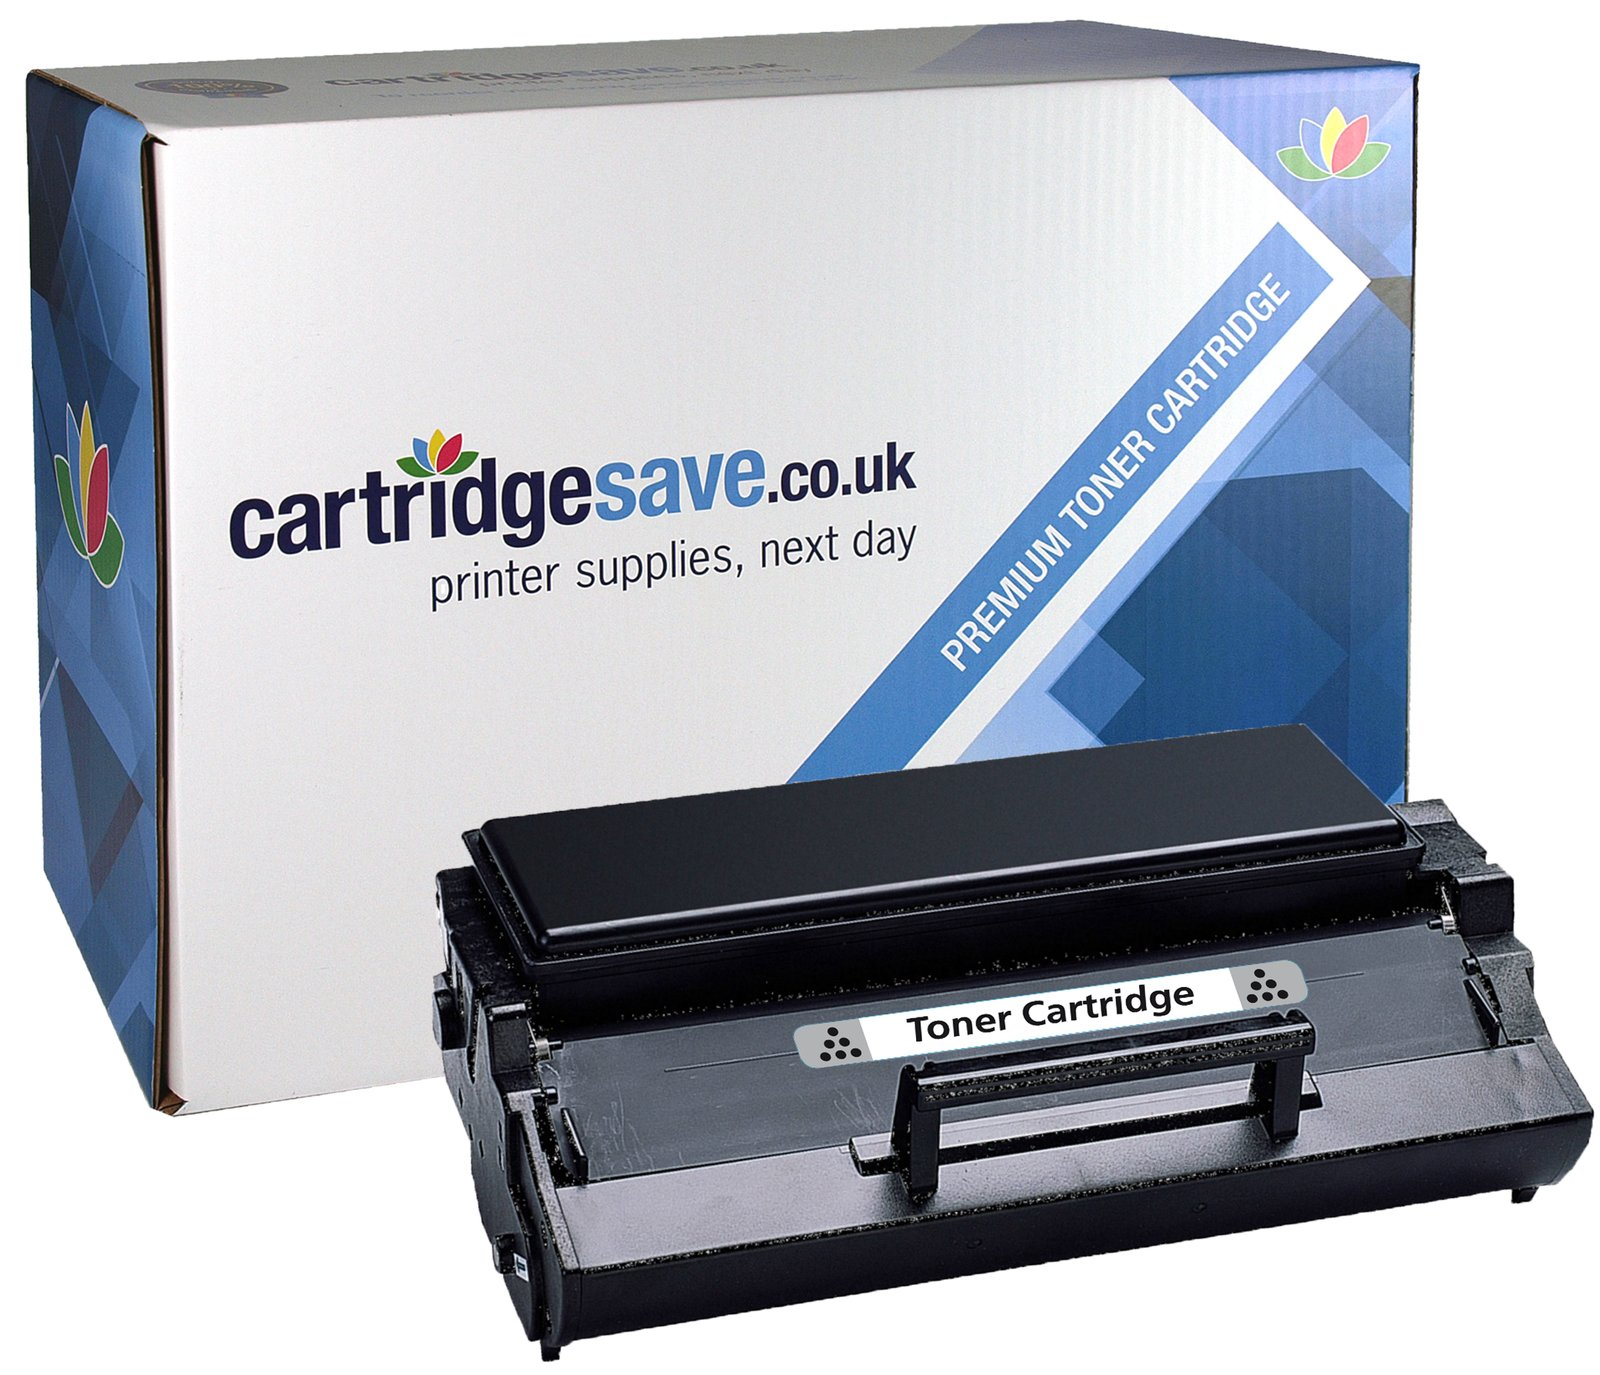 Compatible Lexmark 08A0477 High Capacity Black Toner Cartridge (Replaces 0008A0477 Laser Cartridge)